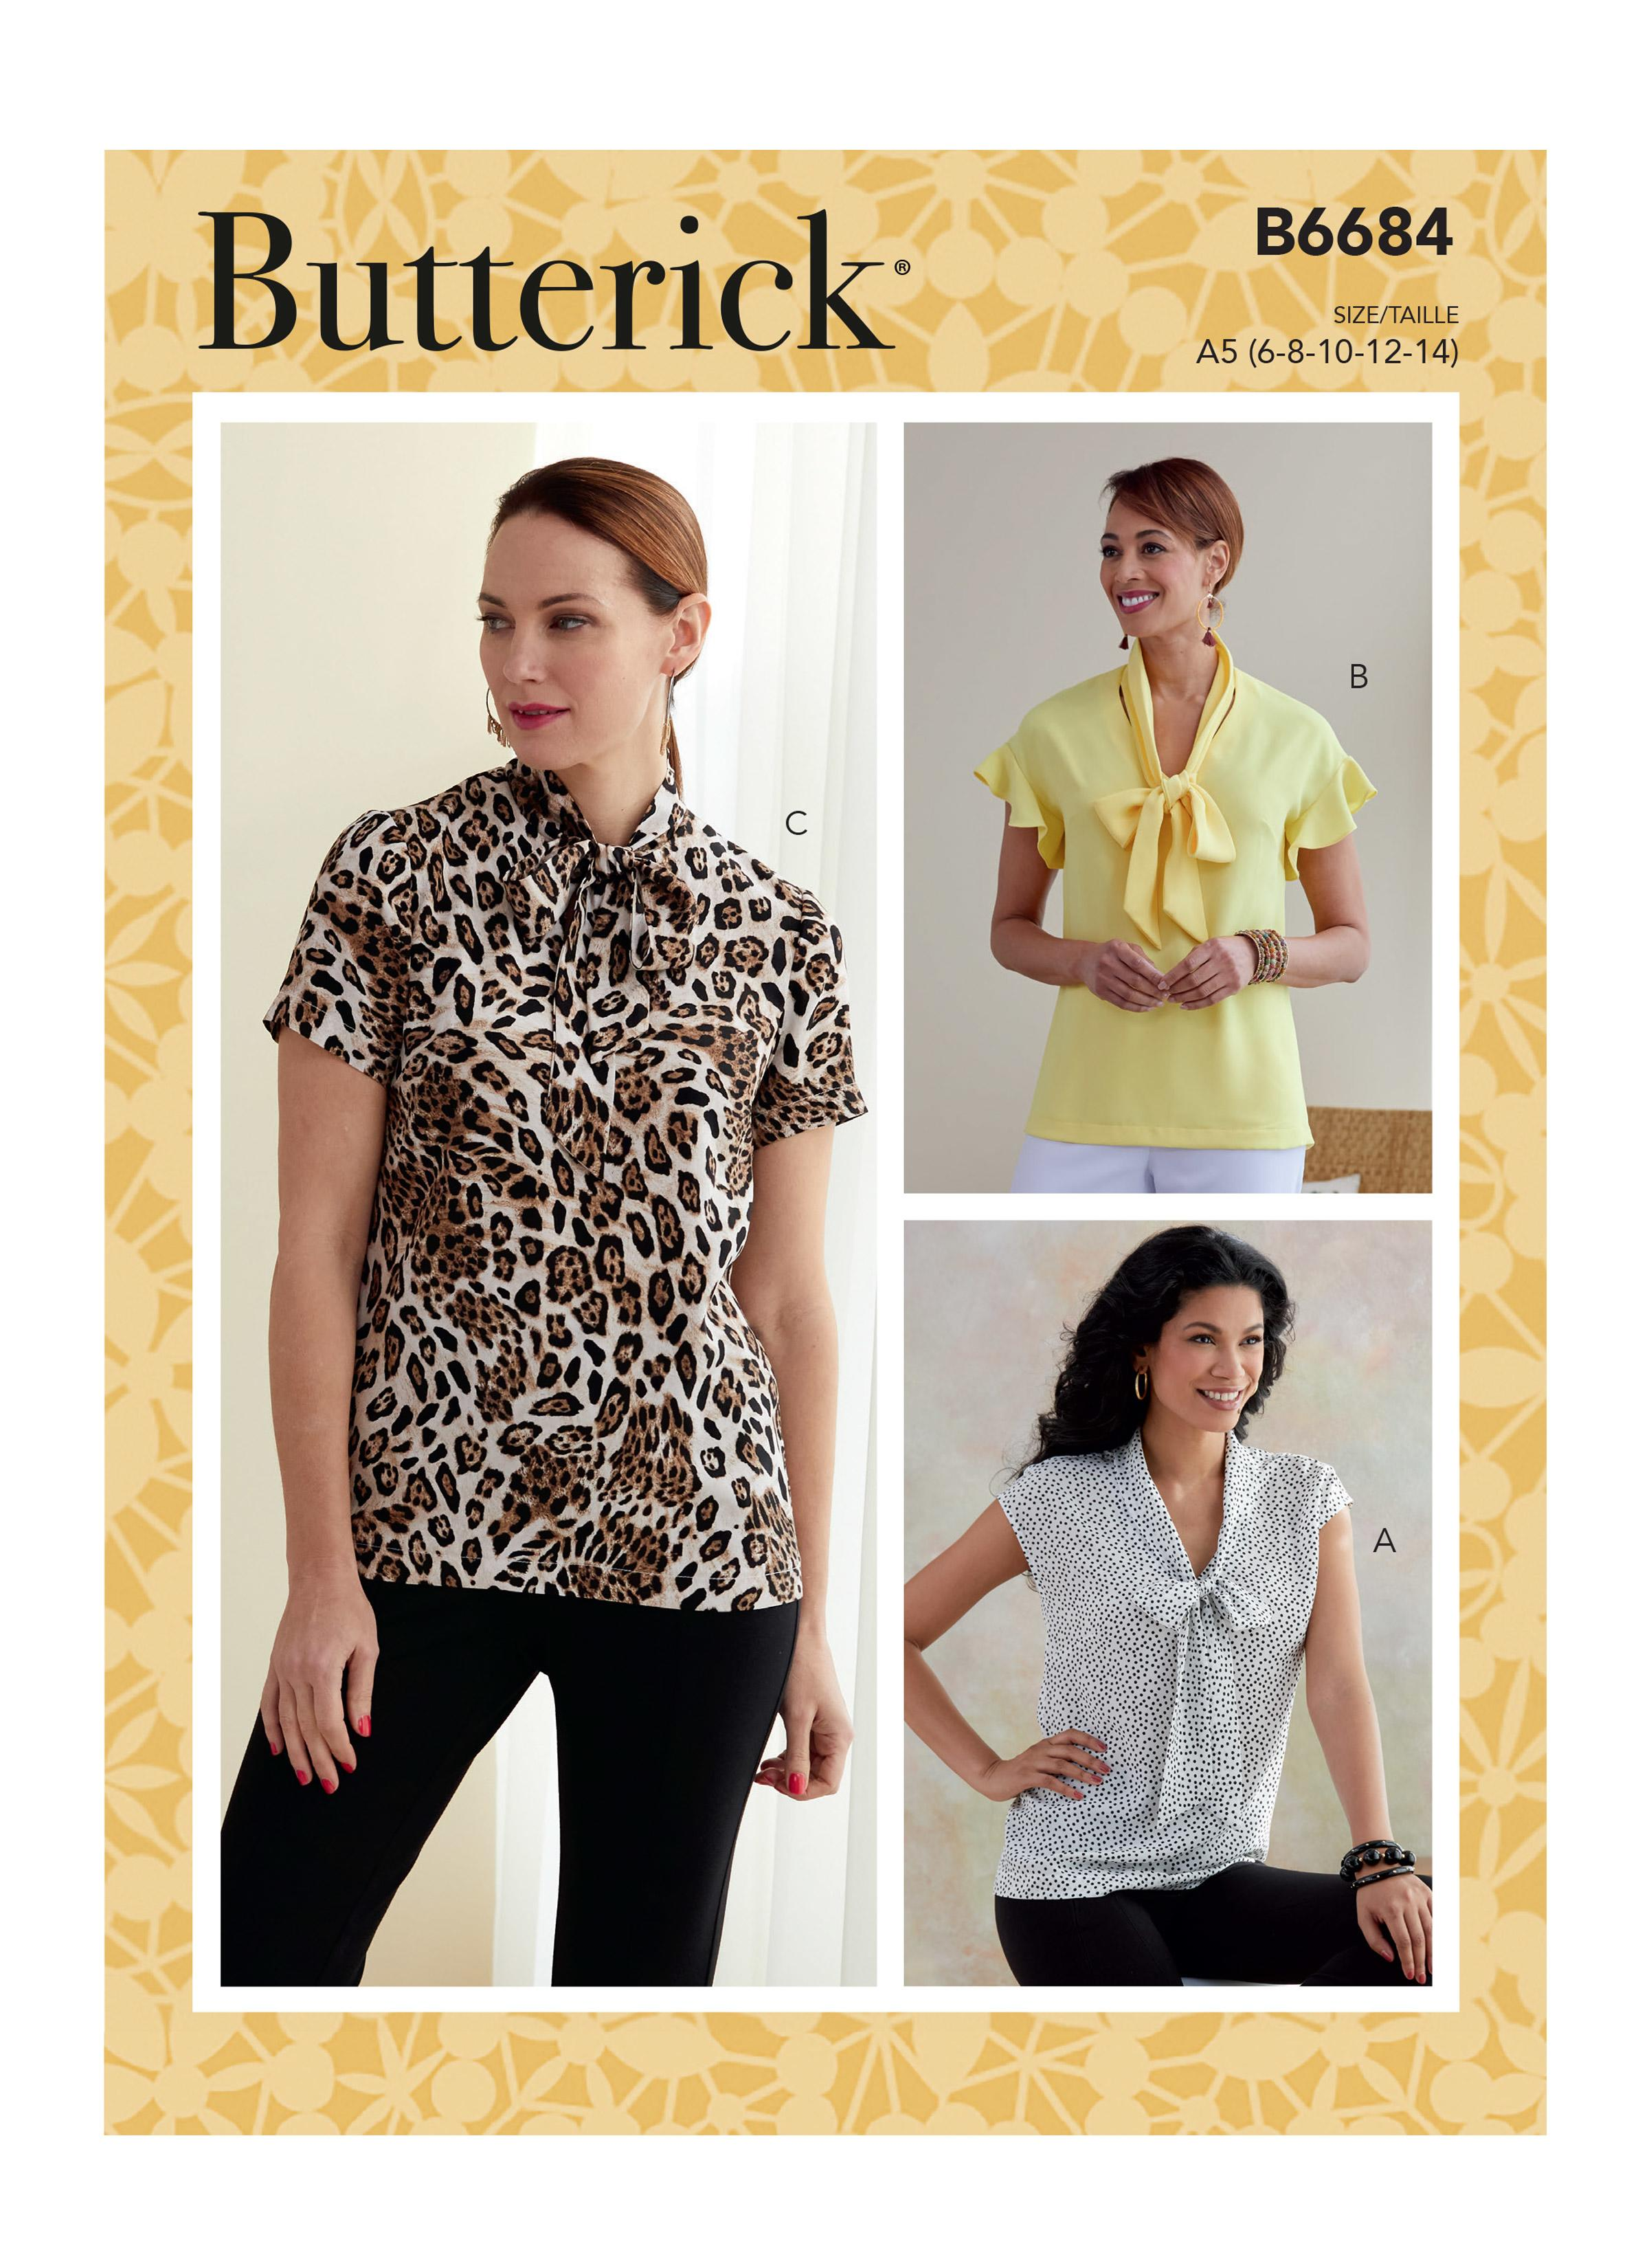 Butterick B6684 Misses' Top